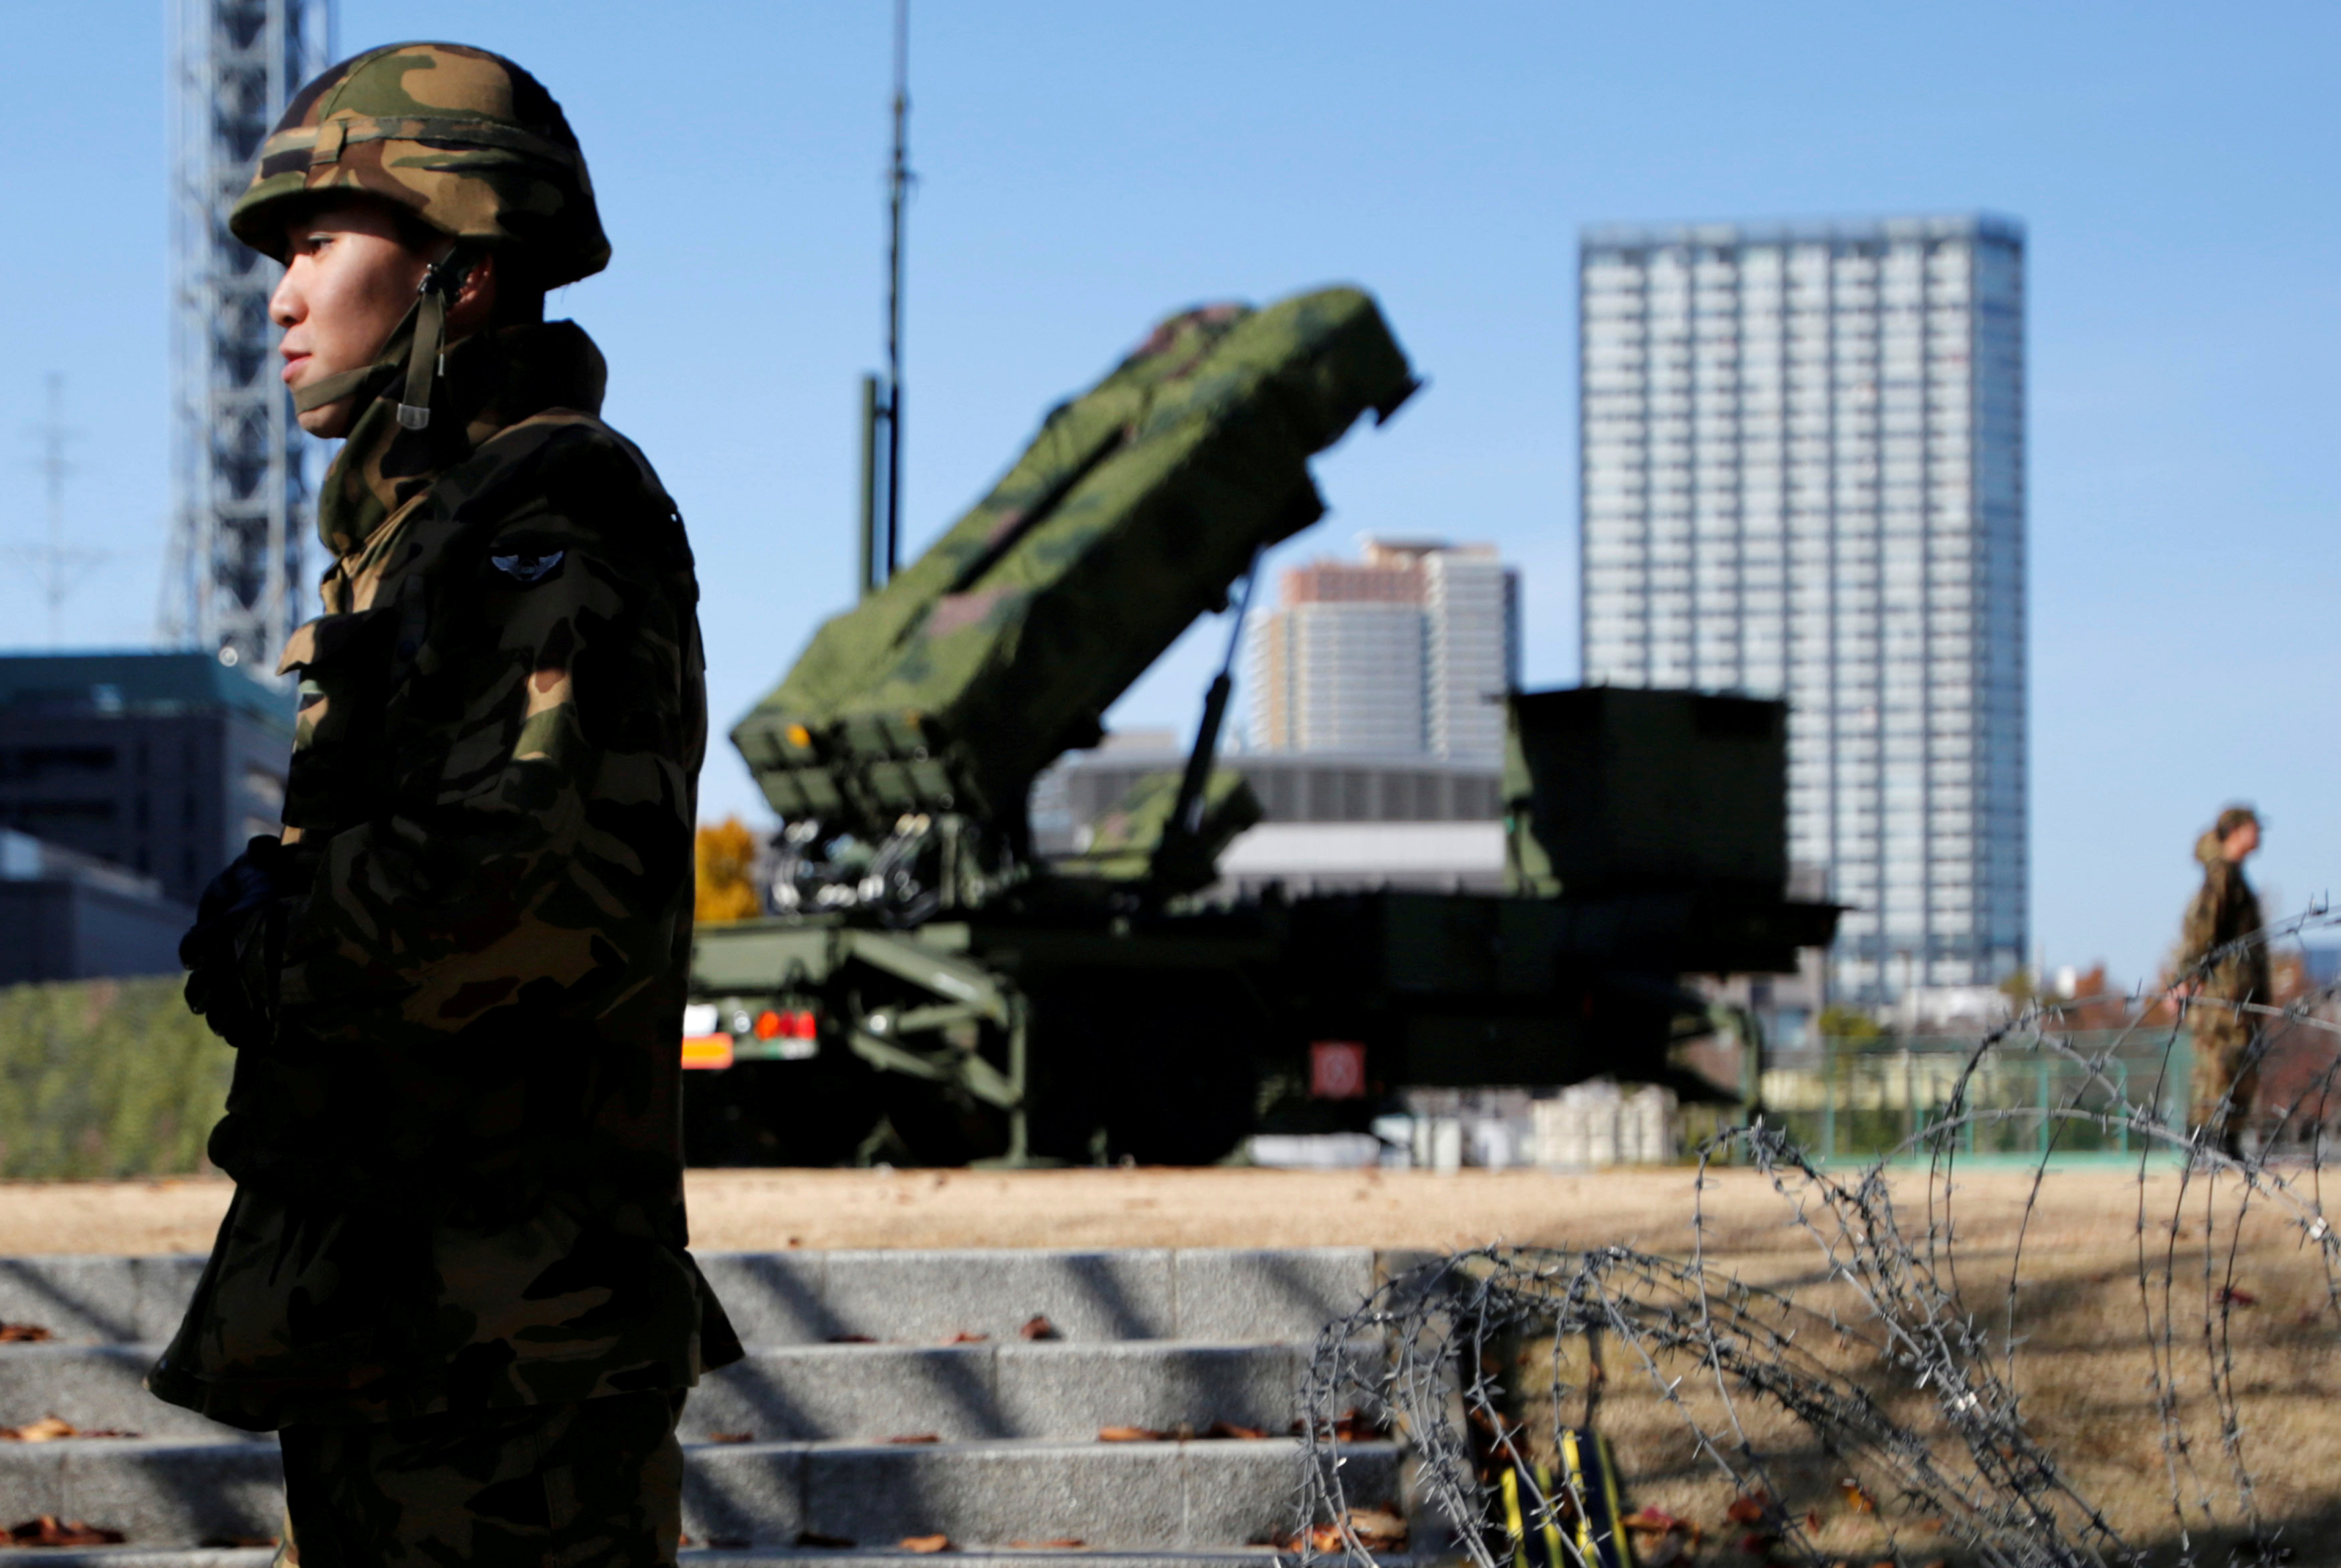 Members of the Japan Self-Defence Forces stand guard near Patriot Advanced Capability-3 (PAC-3) land-to-air missiles, deployed at the Defense Ministry in Tokyo, Japan